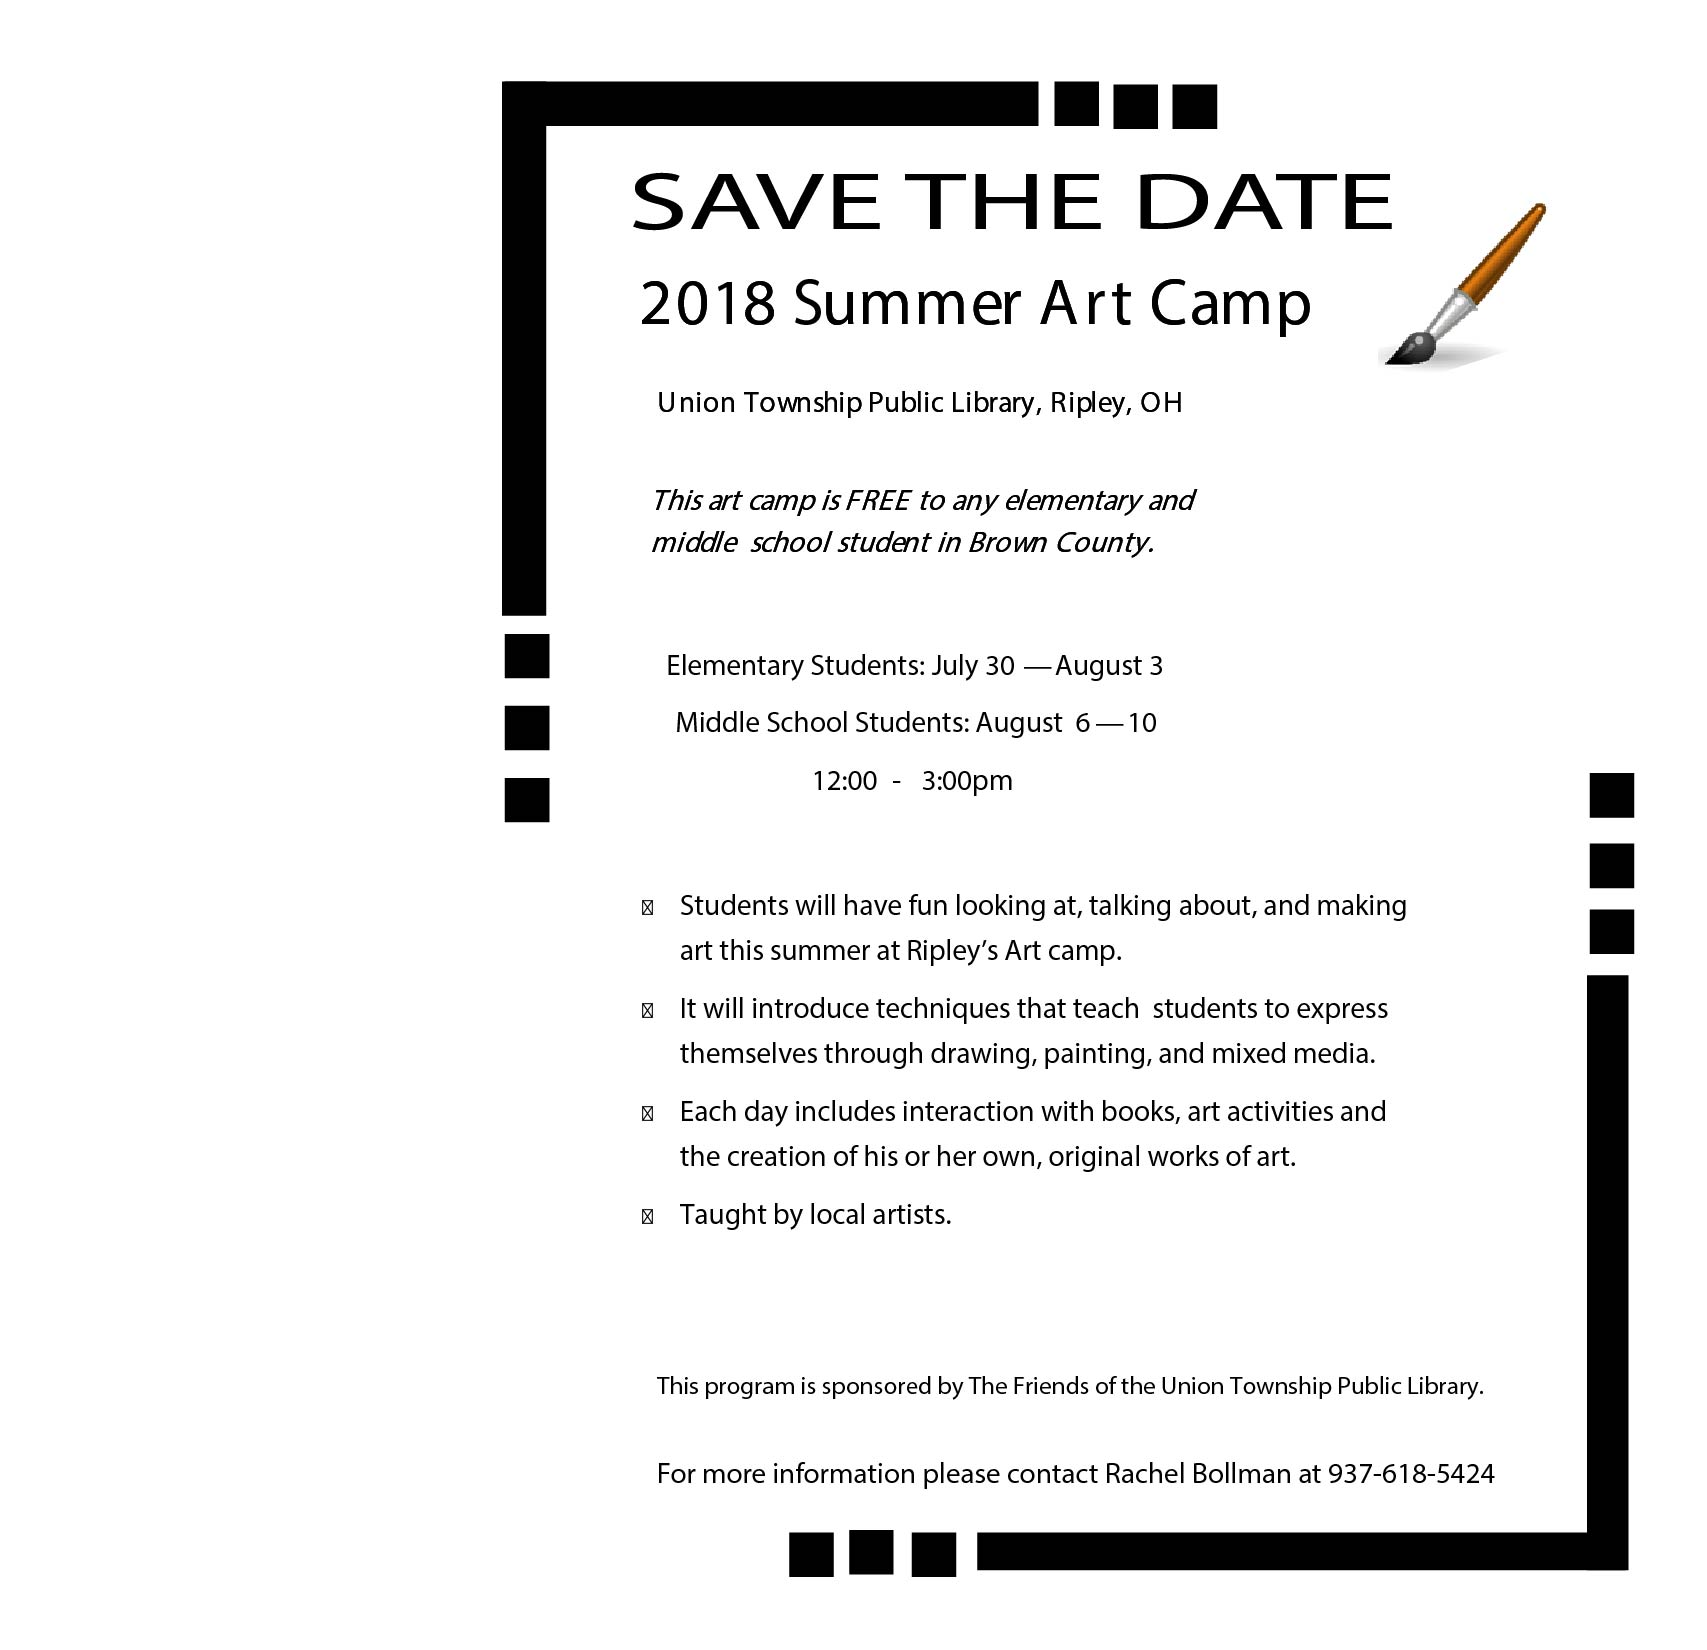 Brown County Art Club - Elementary Students